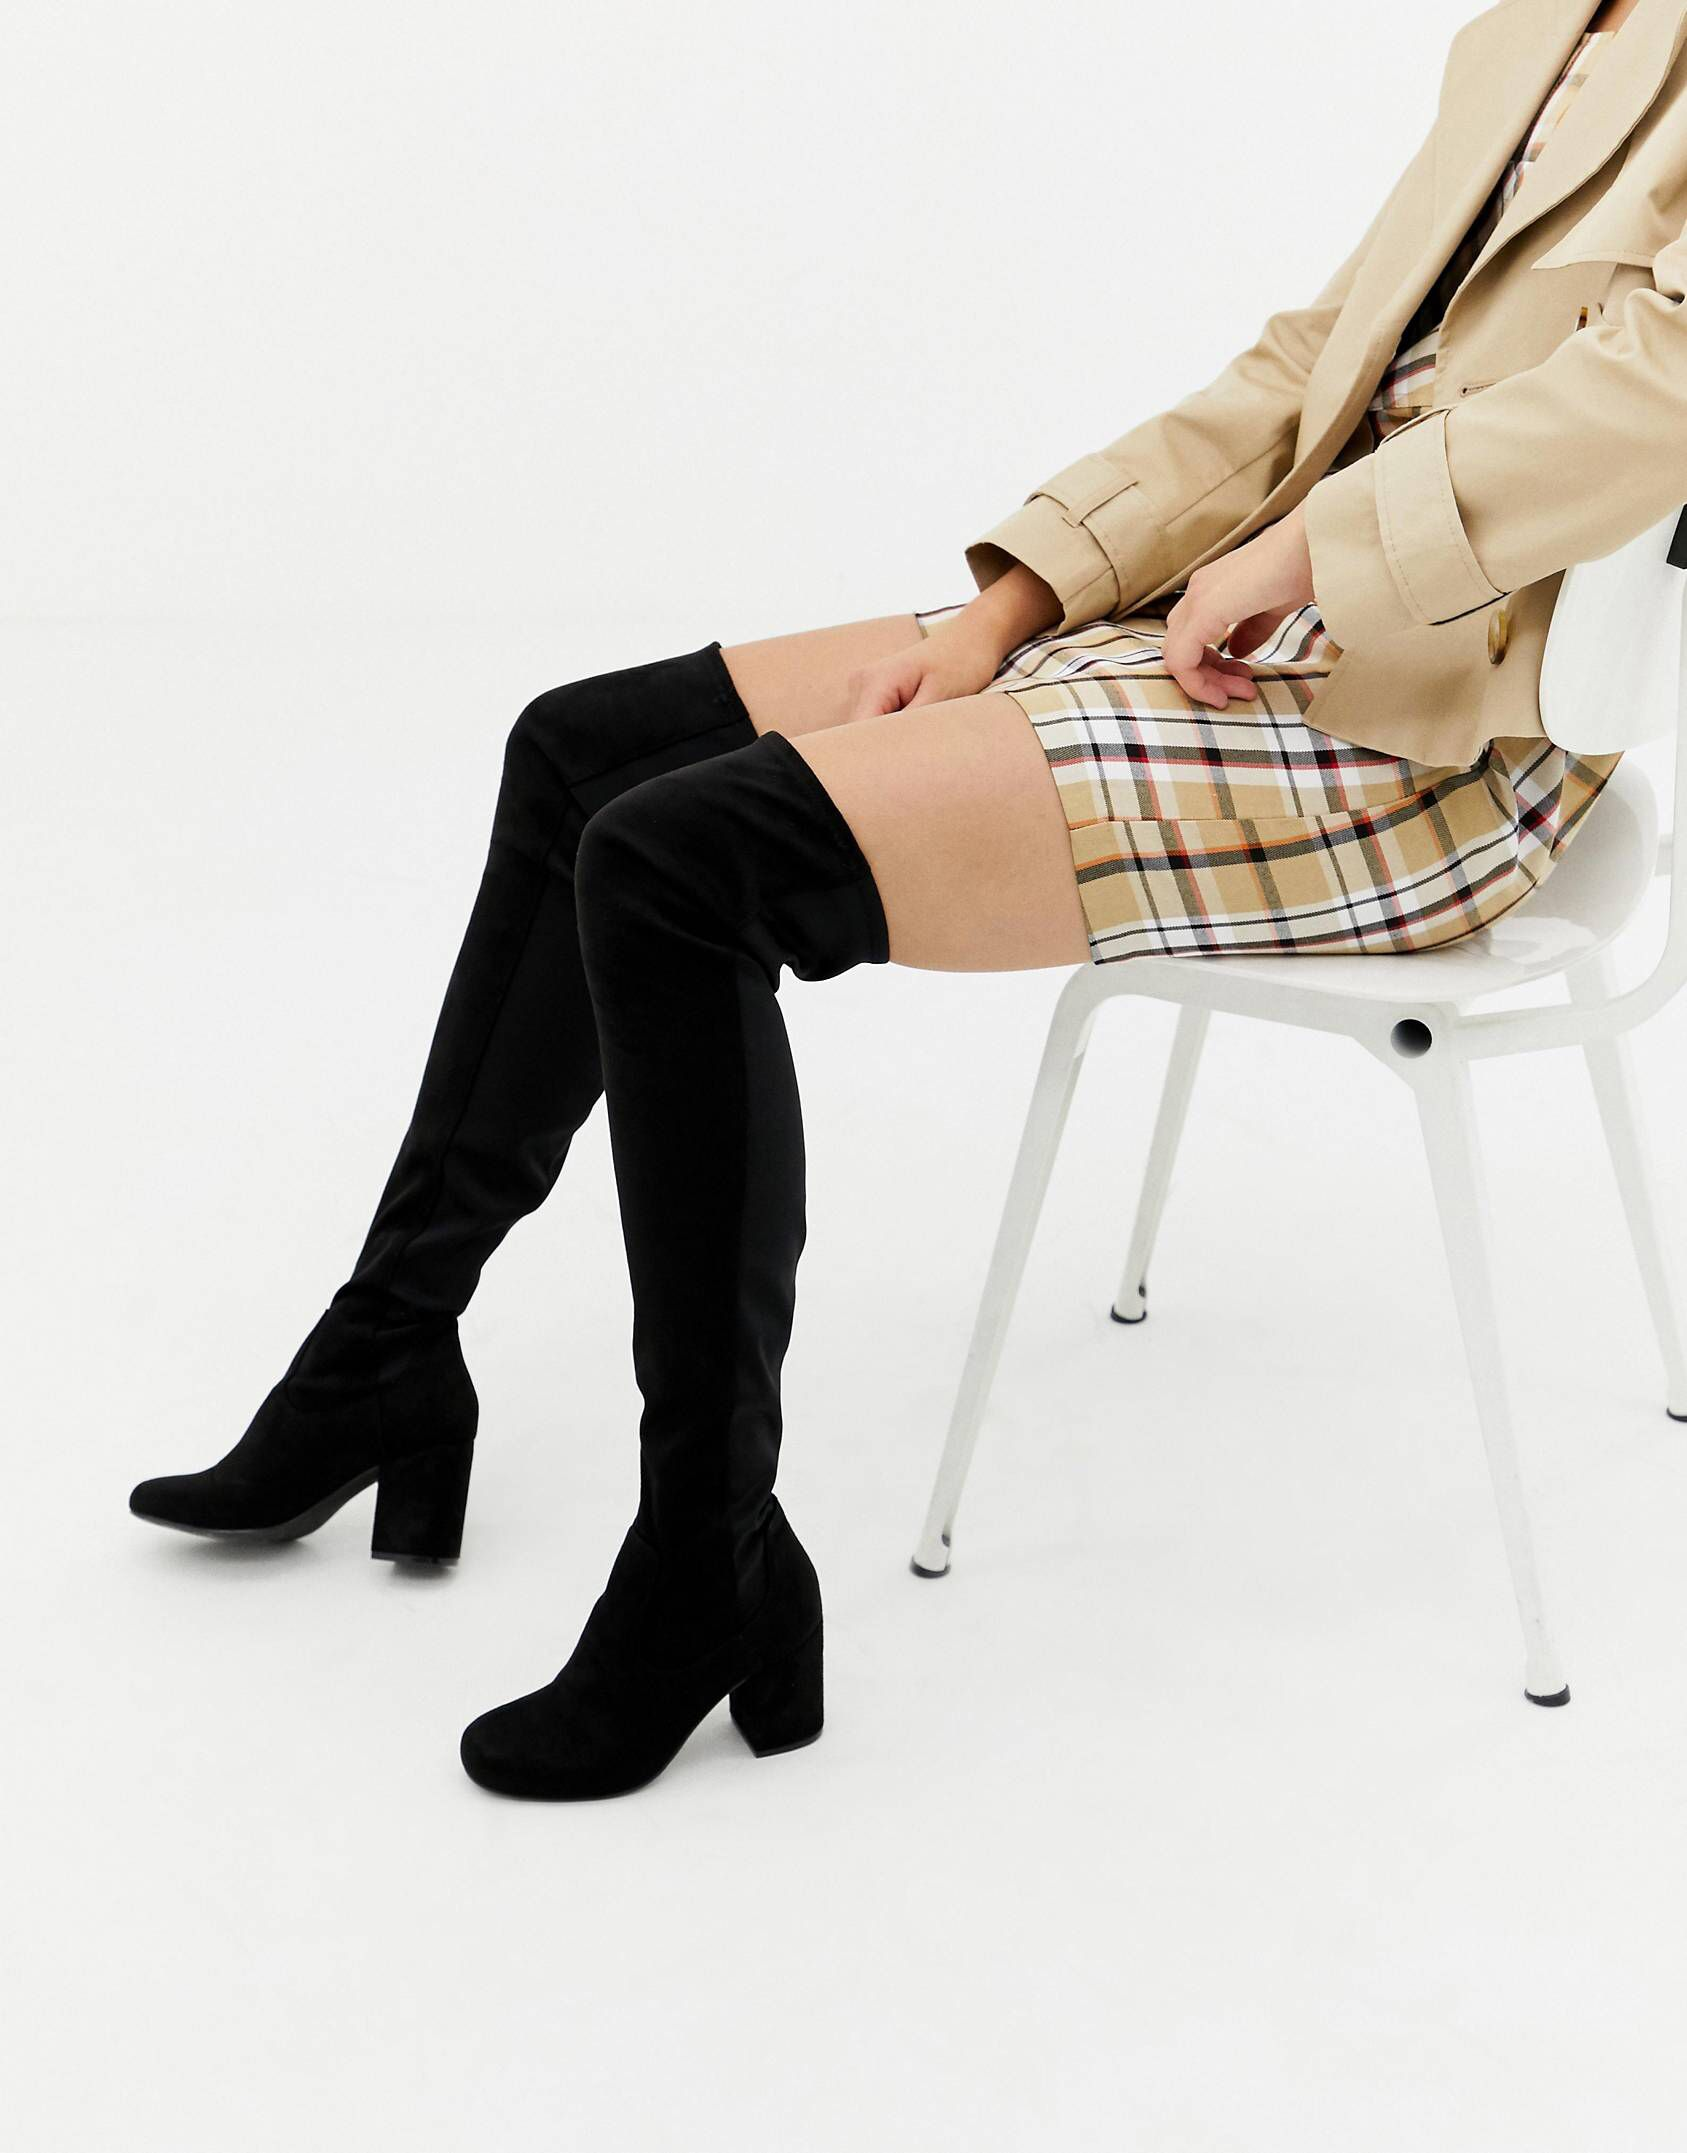 ab01b3cb30071 Shop the new range of women's boots at ASOS. Choose from ankle length, over  the knee and knee high boots for women in leather and suede styles today!